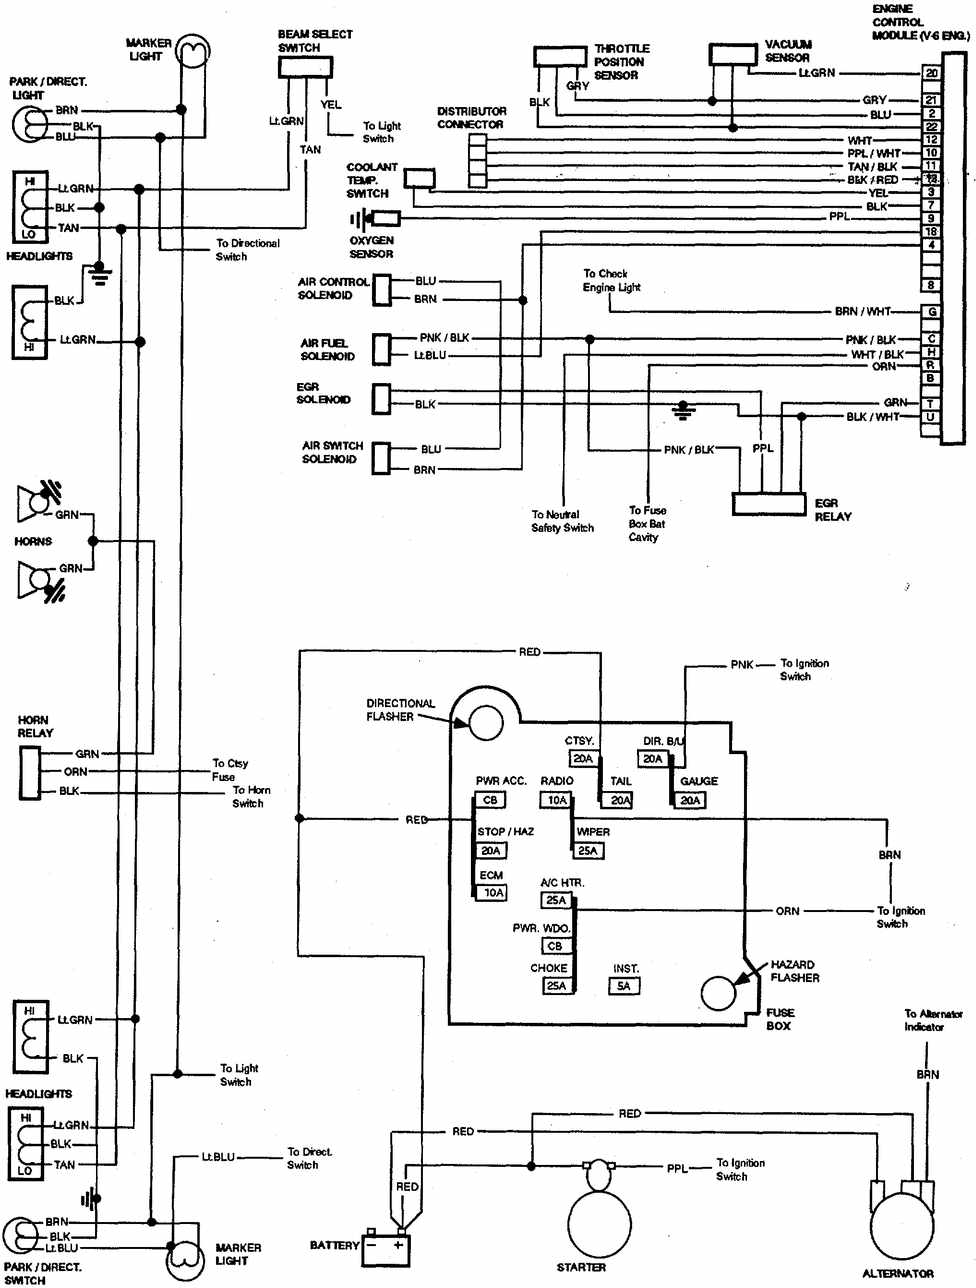 2005 fleetwood wiring diagram